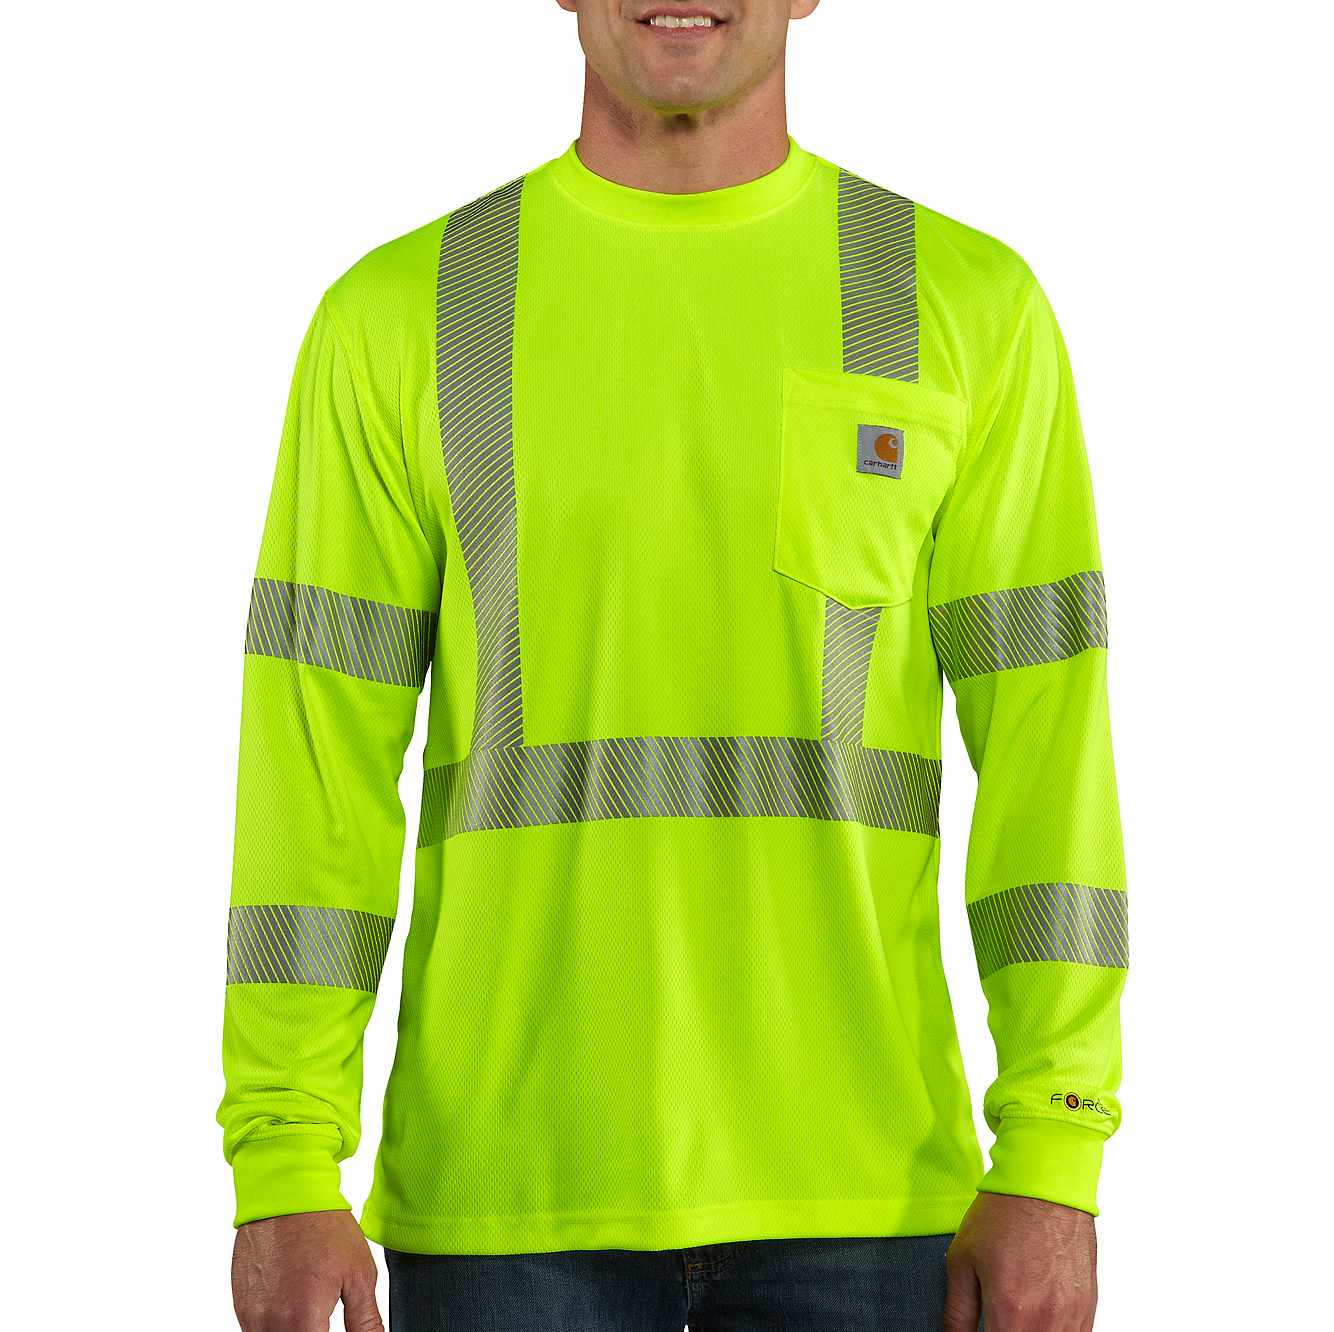 Picture of Carhartt Force® High-Visibility Long-Sleeve Class 3 T-Shirt in Brite Lime